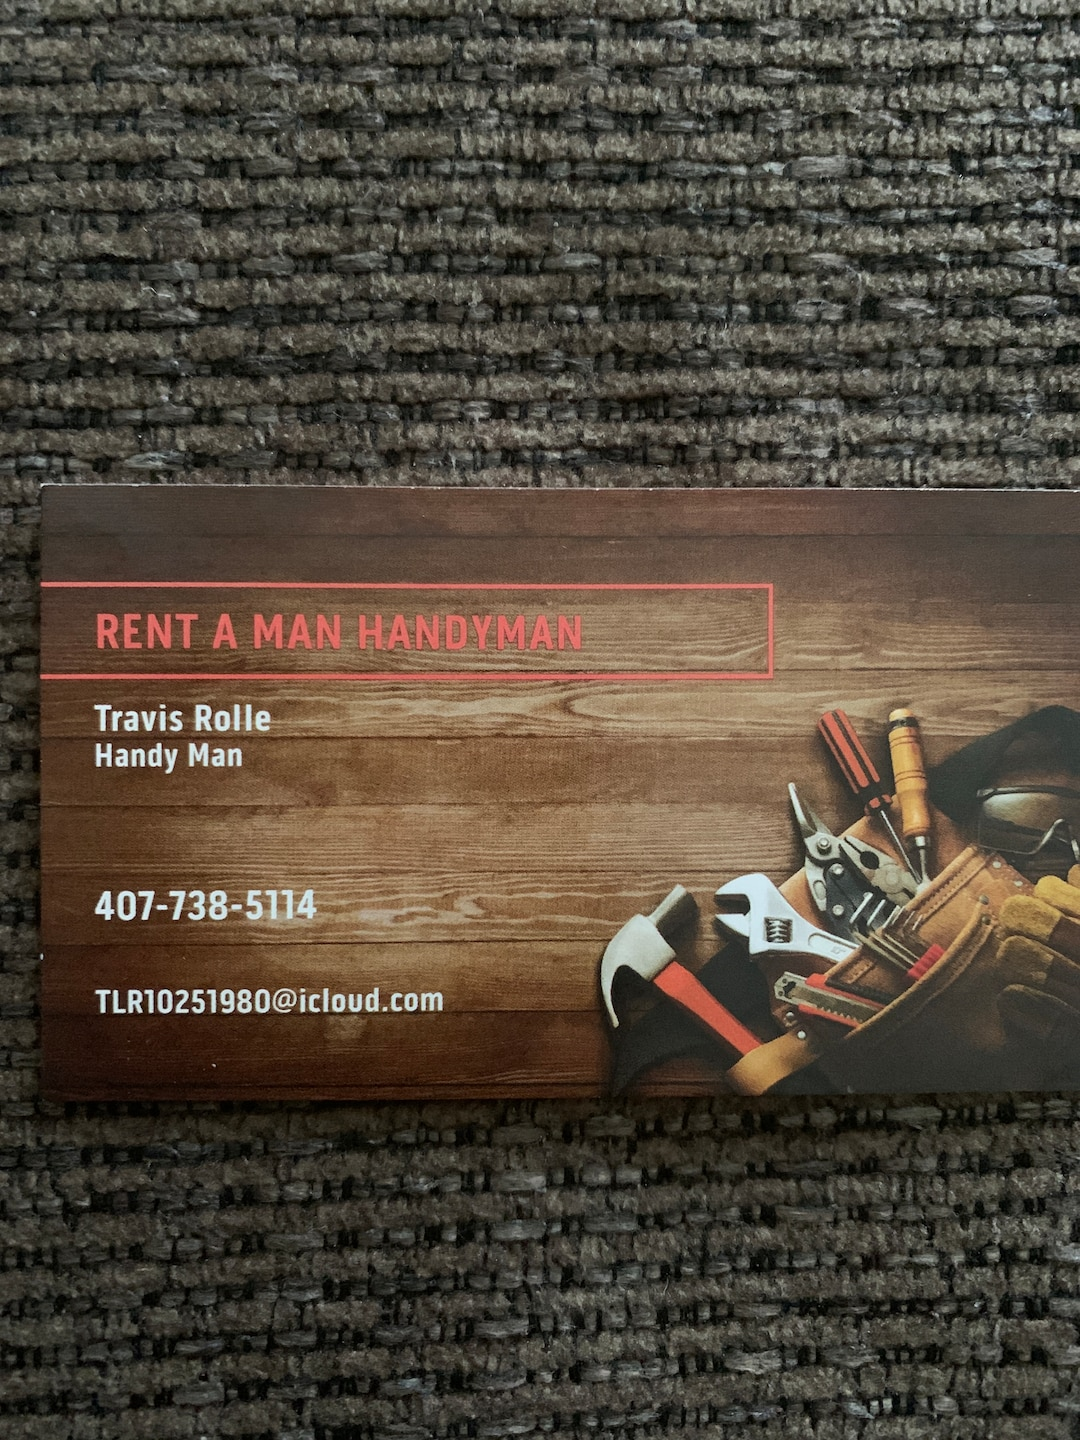 RENT A MAN HANDYMAN LLC